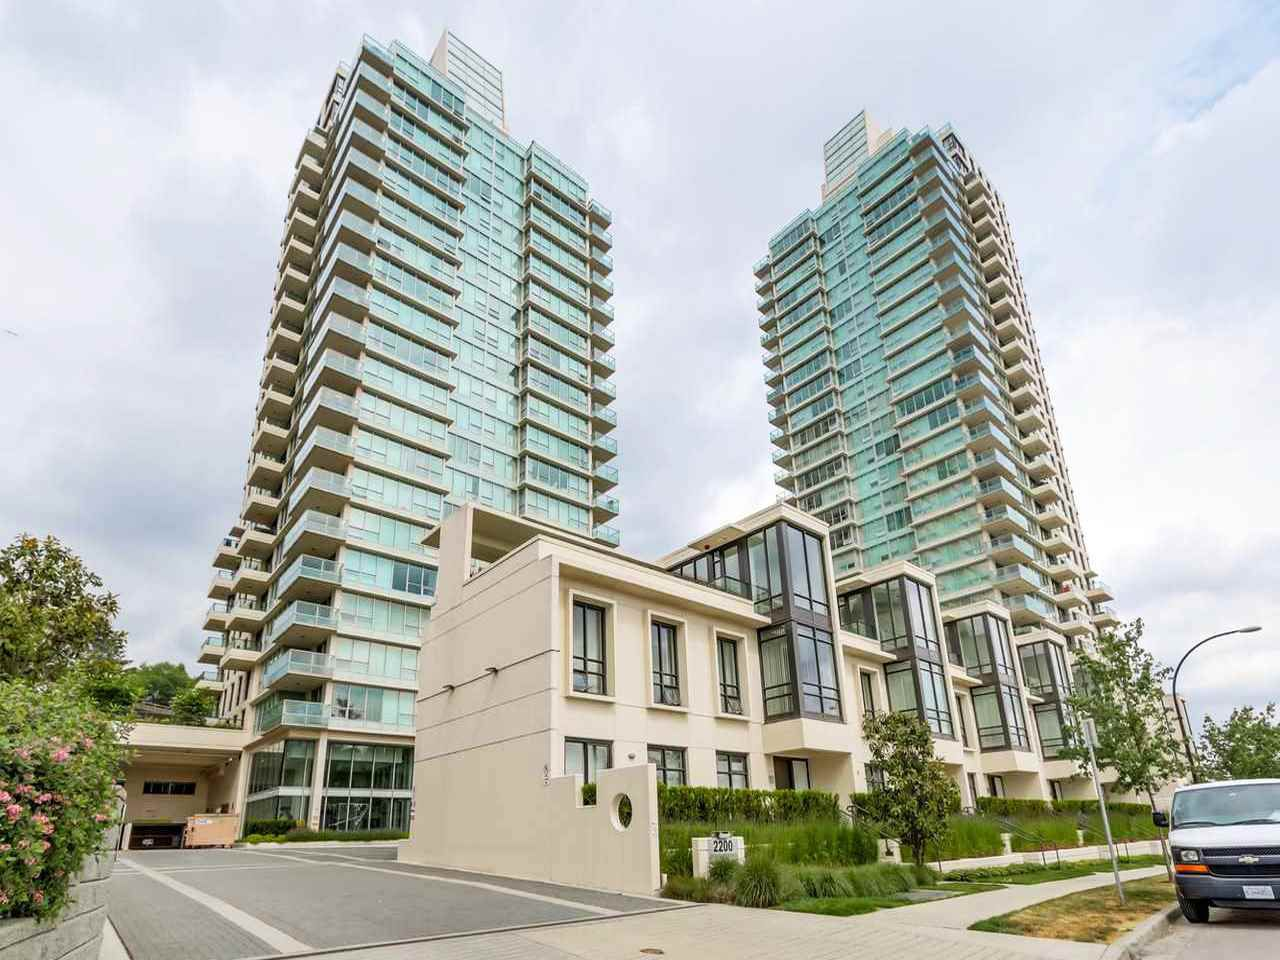 """Main Photo: 2006 2200 DOUGLAS Road in Burnaby: Brentwood Park Condo for sale in """"AFFINITY BY BOSA"""" (Burnaby North)  : MLS®# R2218056"""